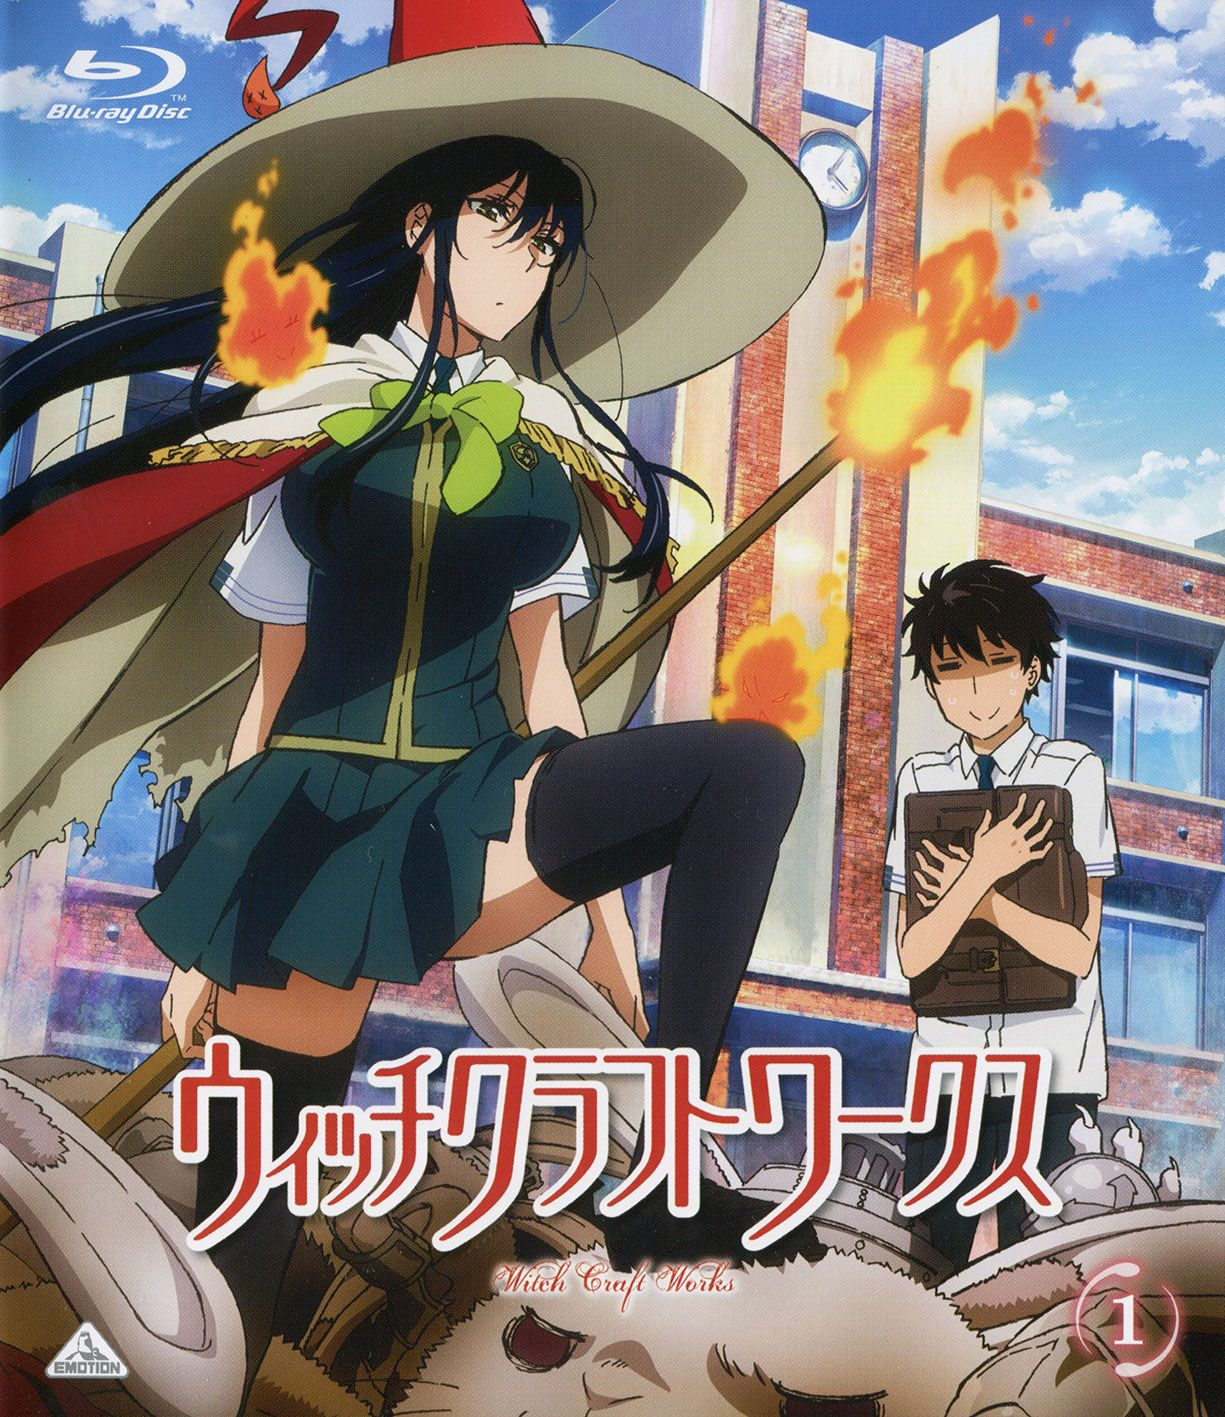 WitchCraftWorks1 Witch craft works, Anime witch, Anime